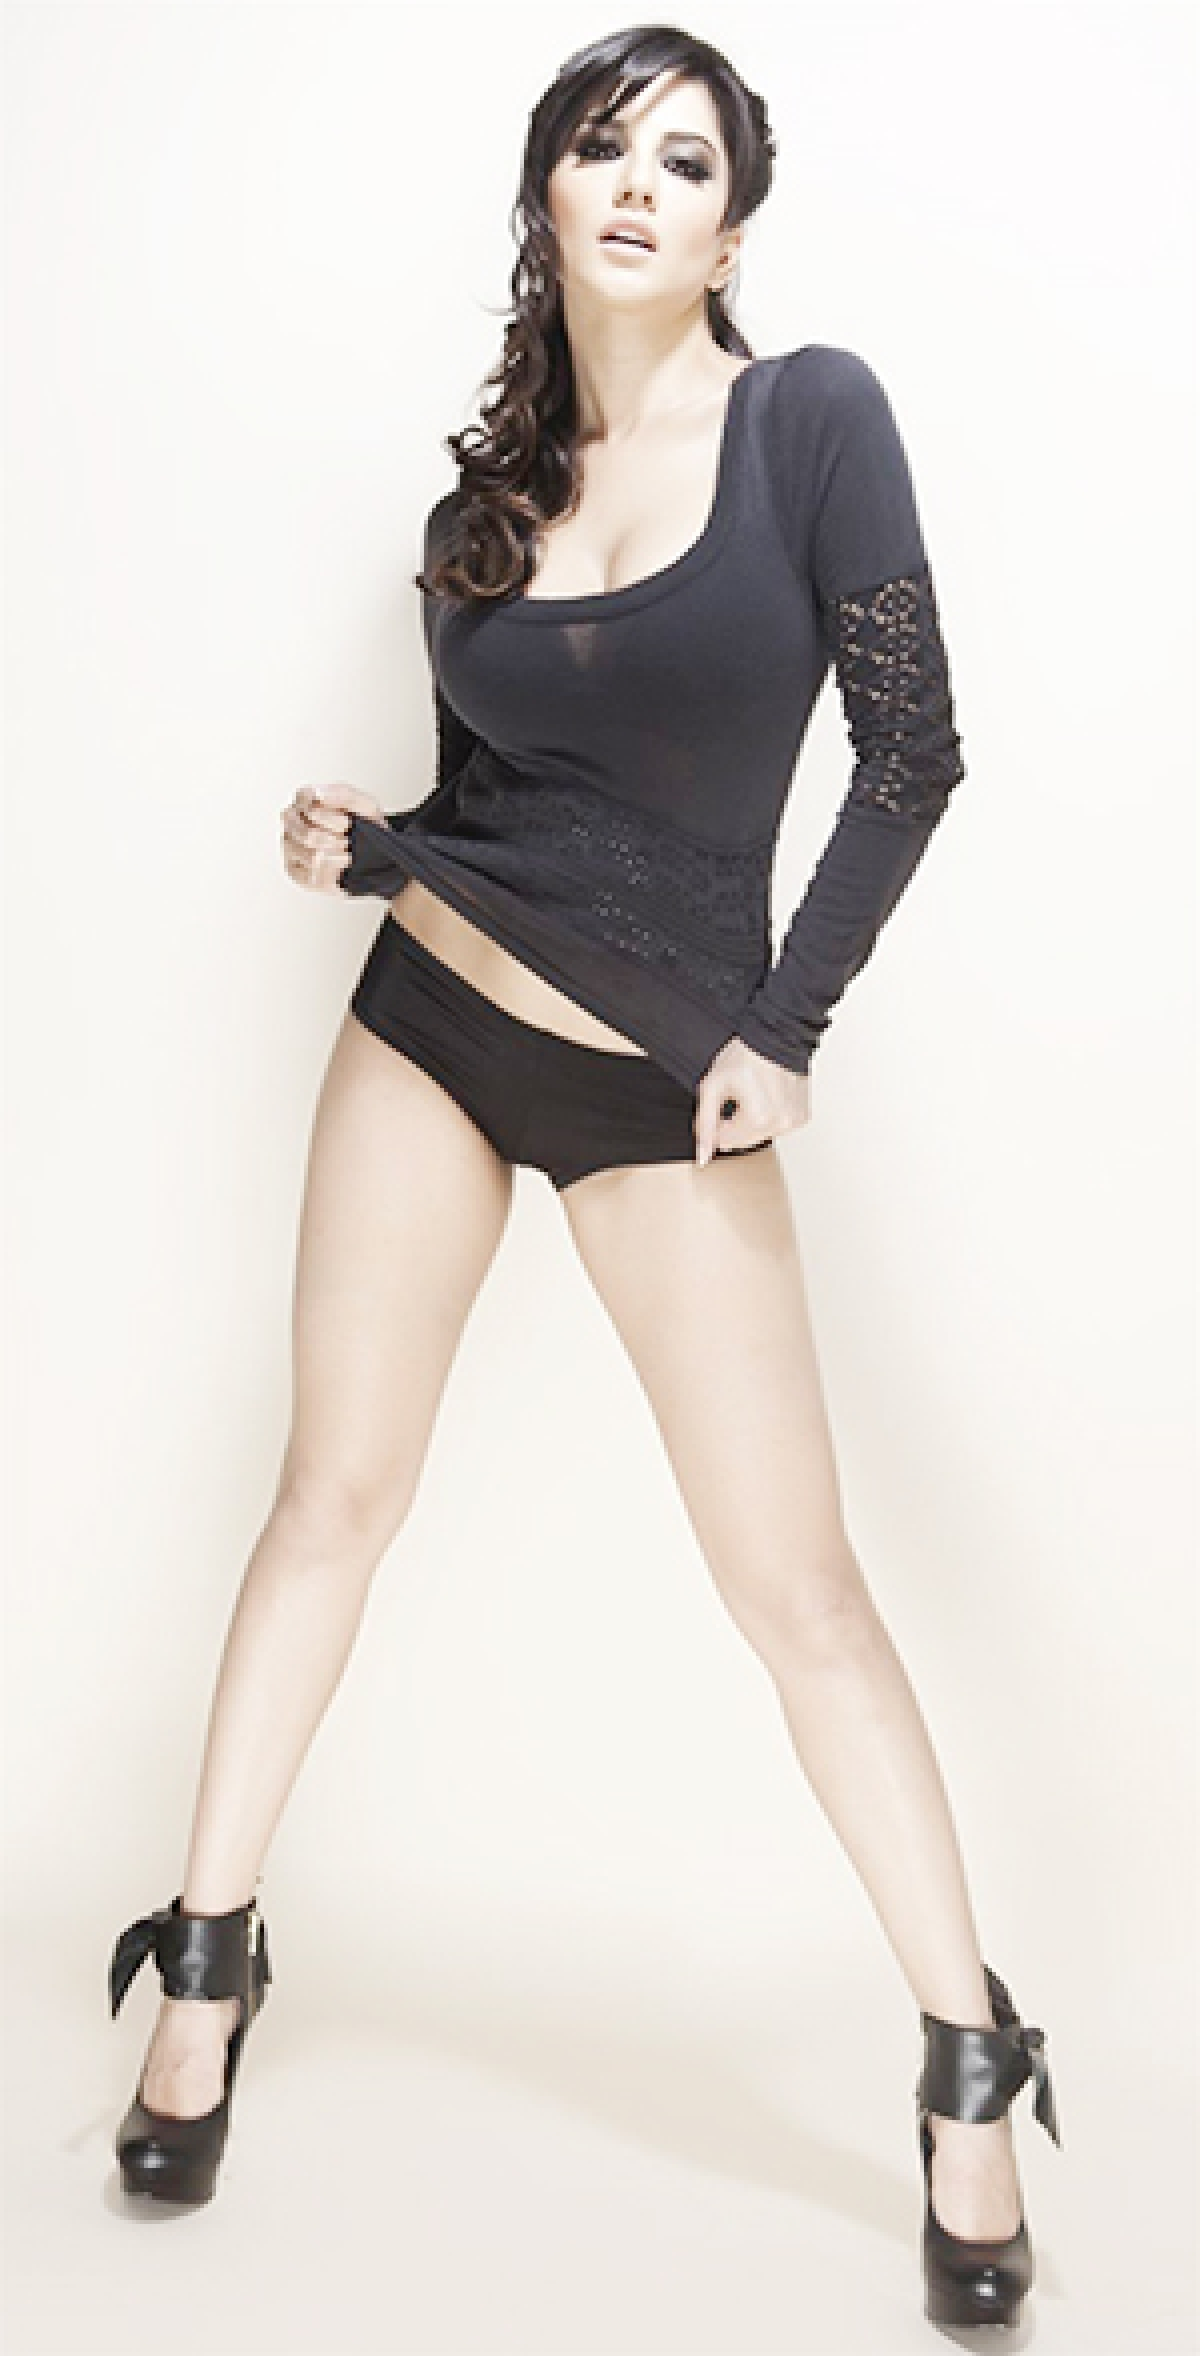 Sunny Leone wants to hit the jackpot and scare audience too